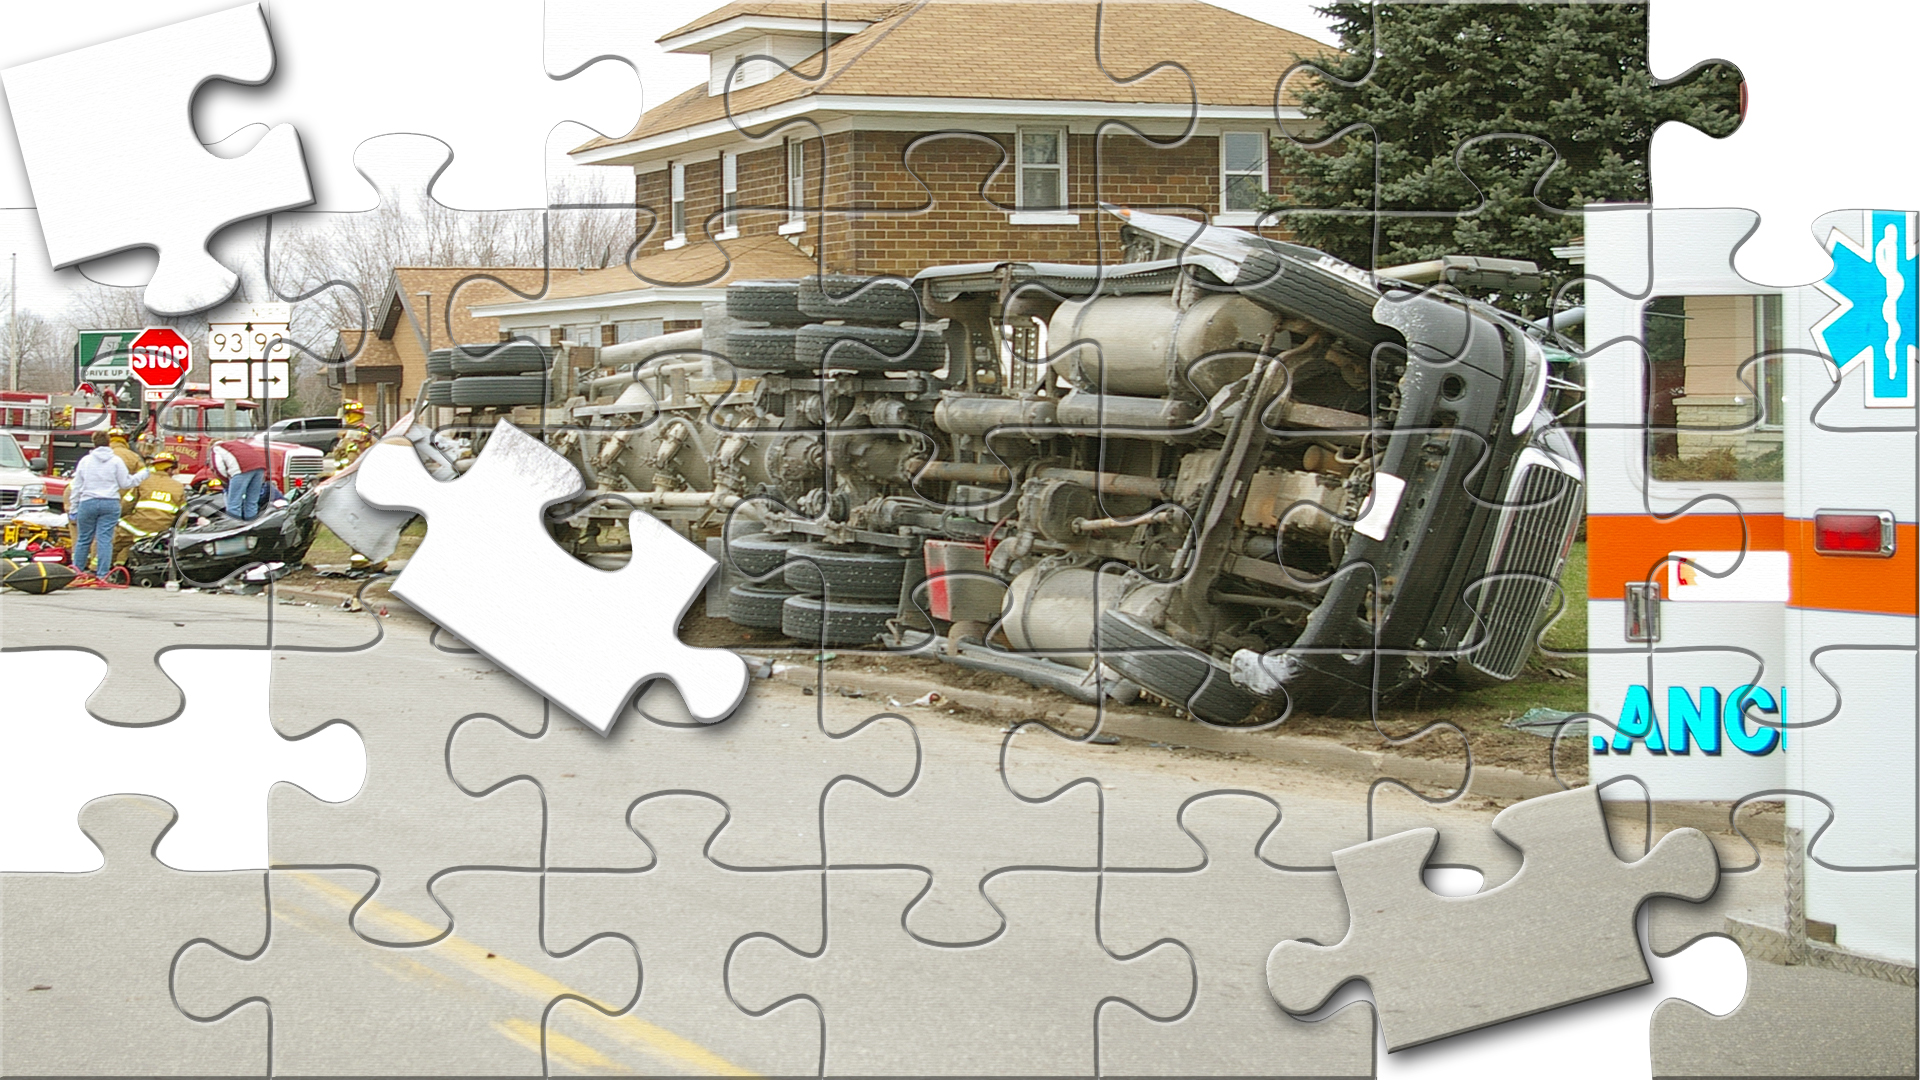 <p>Putting the pieces of the puzzle together one step at a time&#8230;</p>